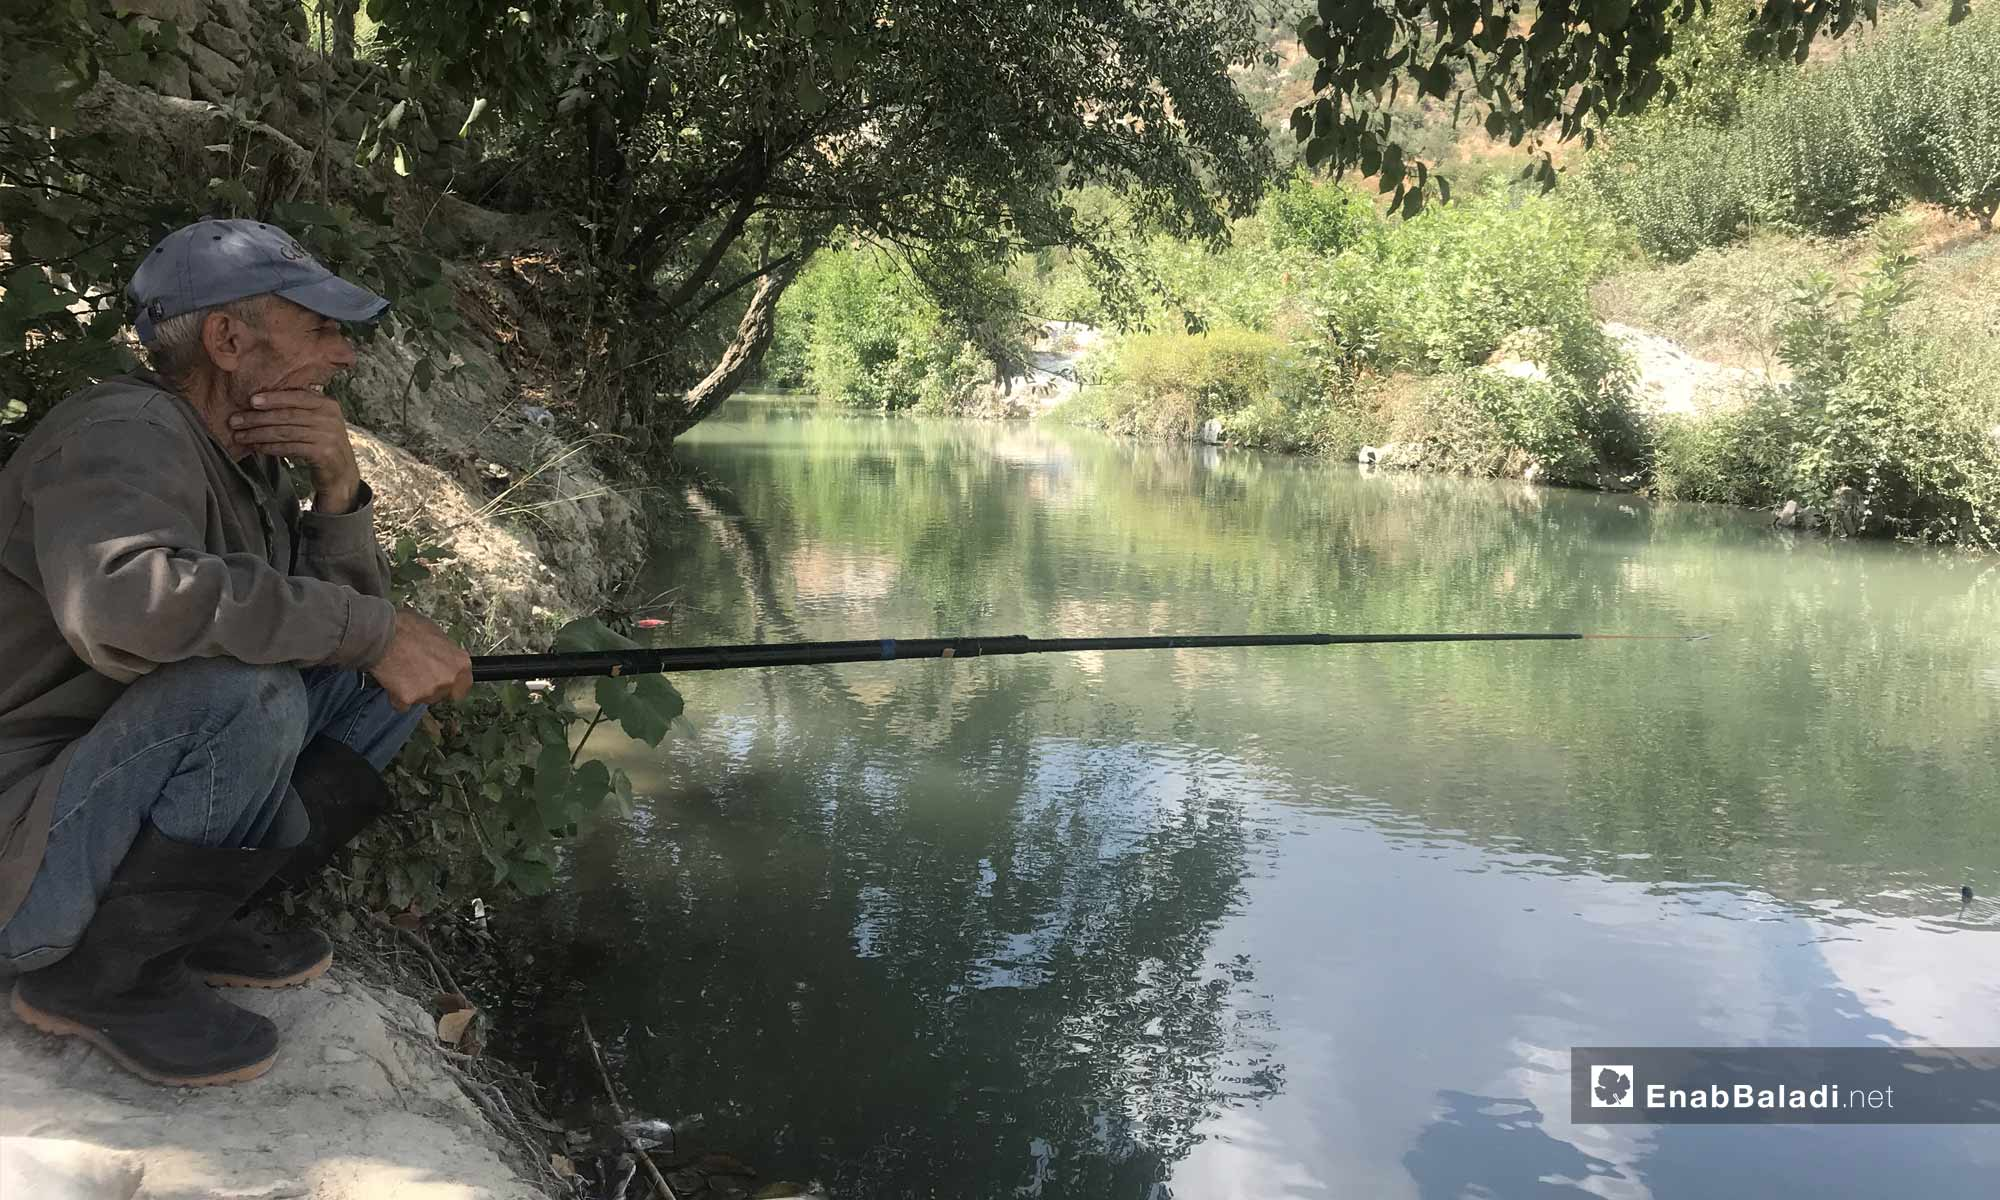 A man fishing in the Assi River, near the city of Darkoush, western rural Idlib -September 8, 2019 (Enab Baladi)